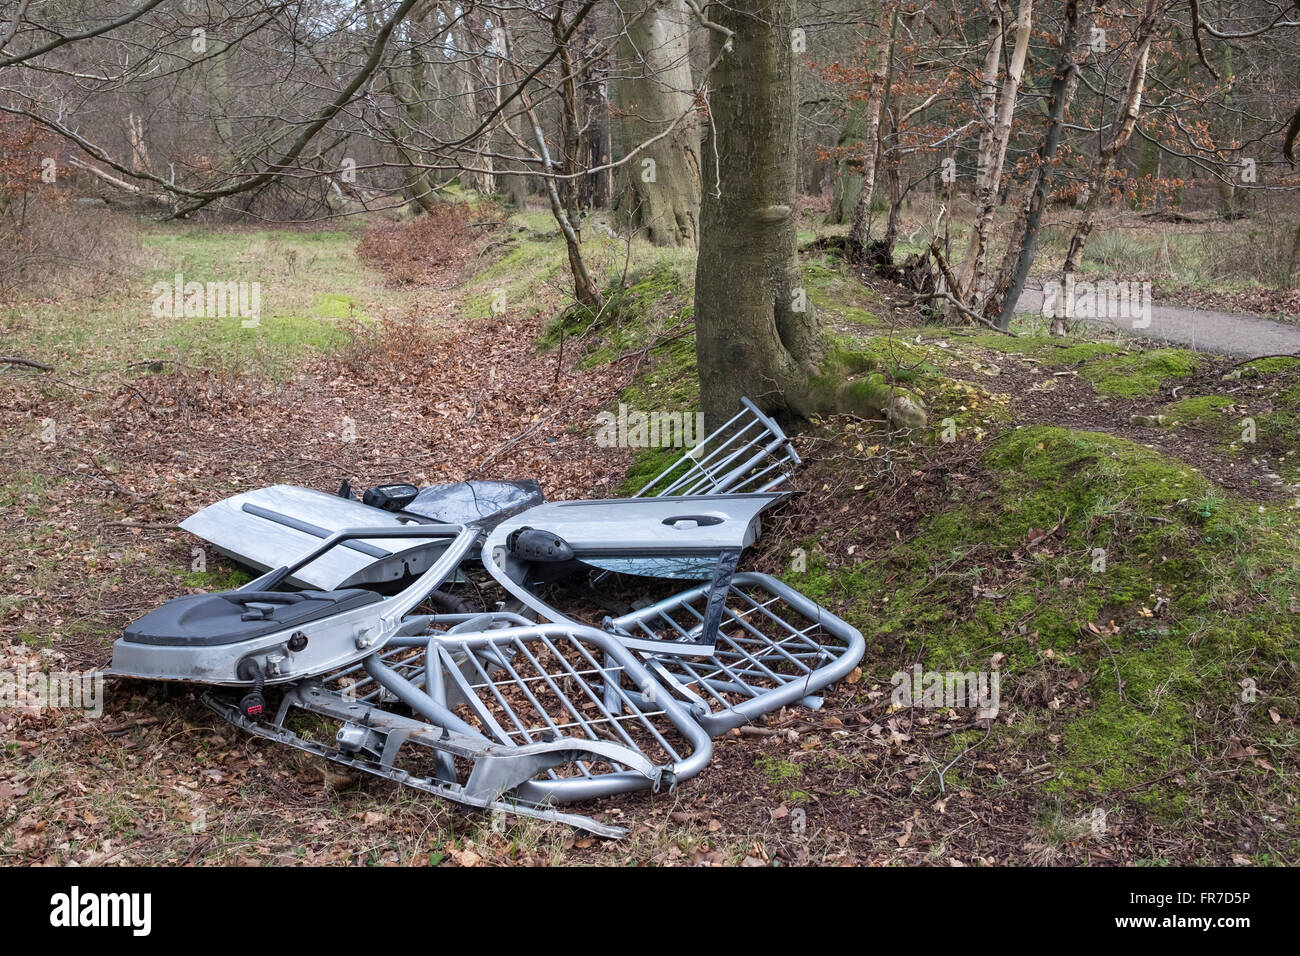 Fly Tipping Rubbish dumped in Ashridge Forest, Hertfordshire - Stock Image